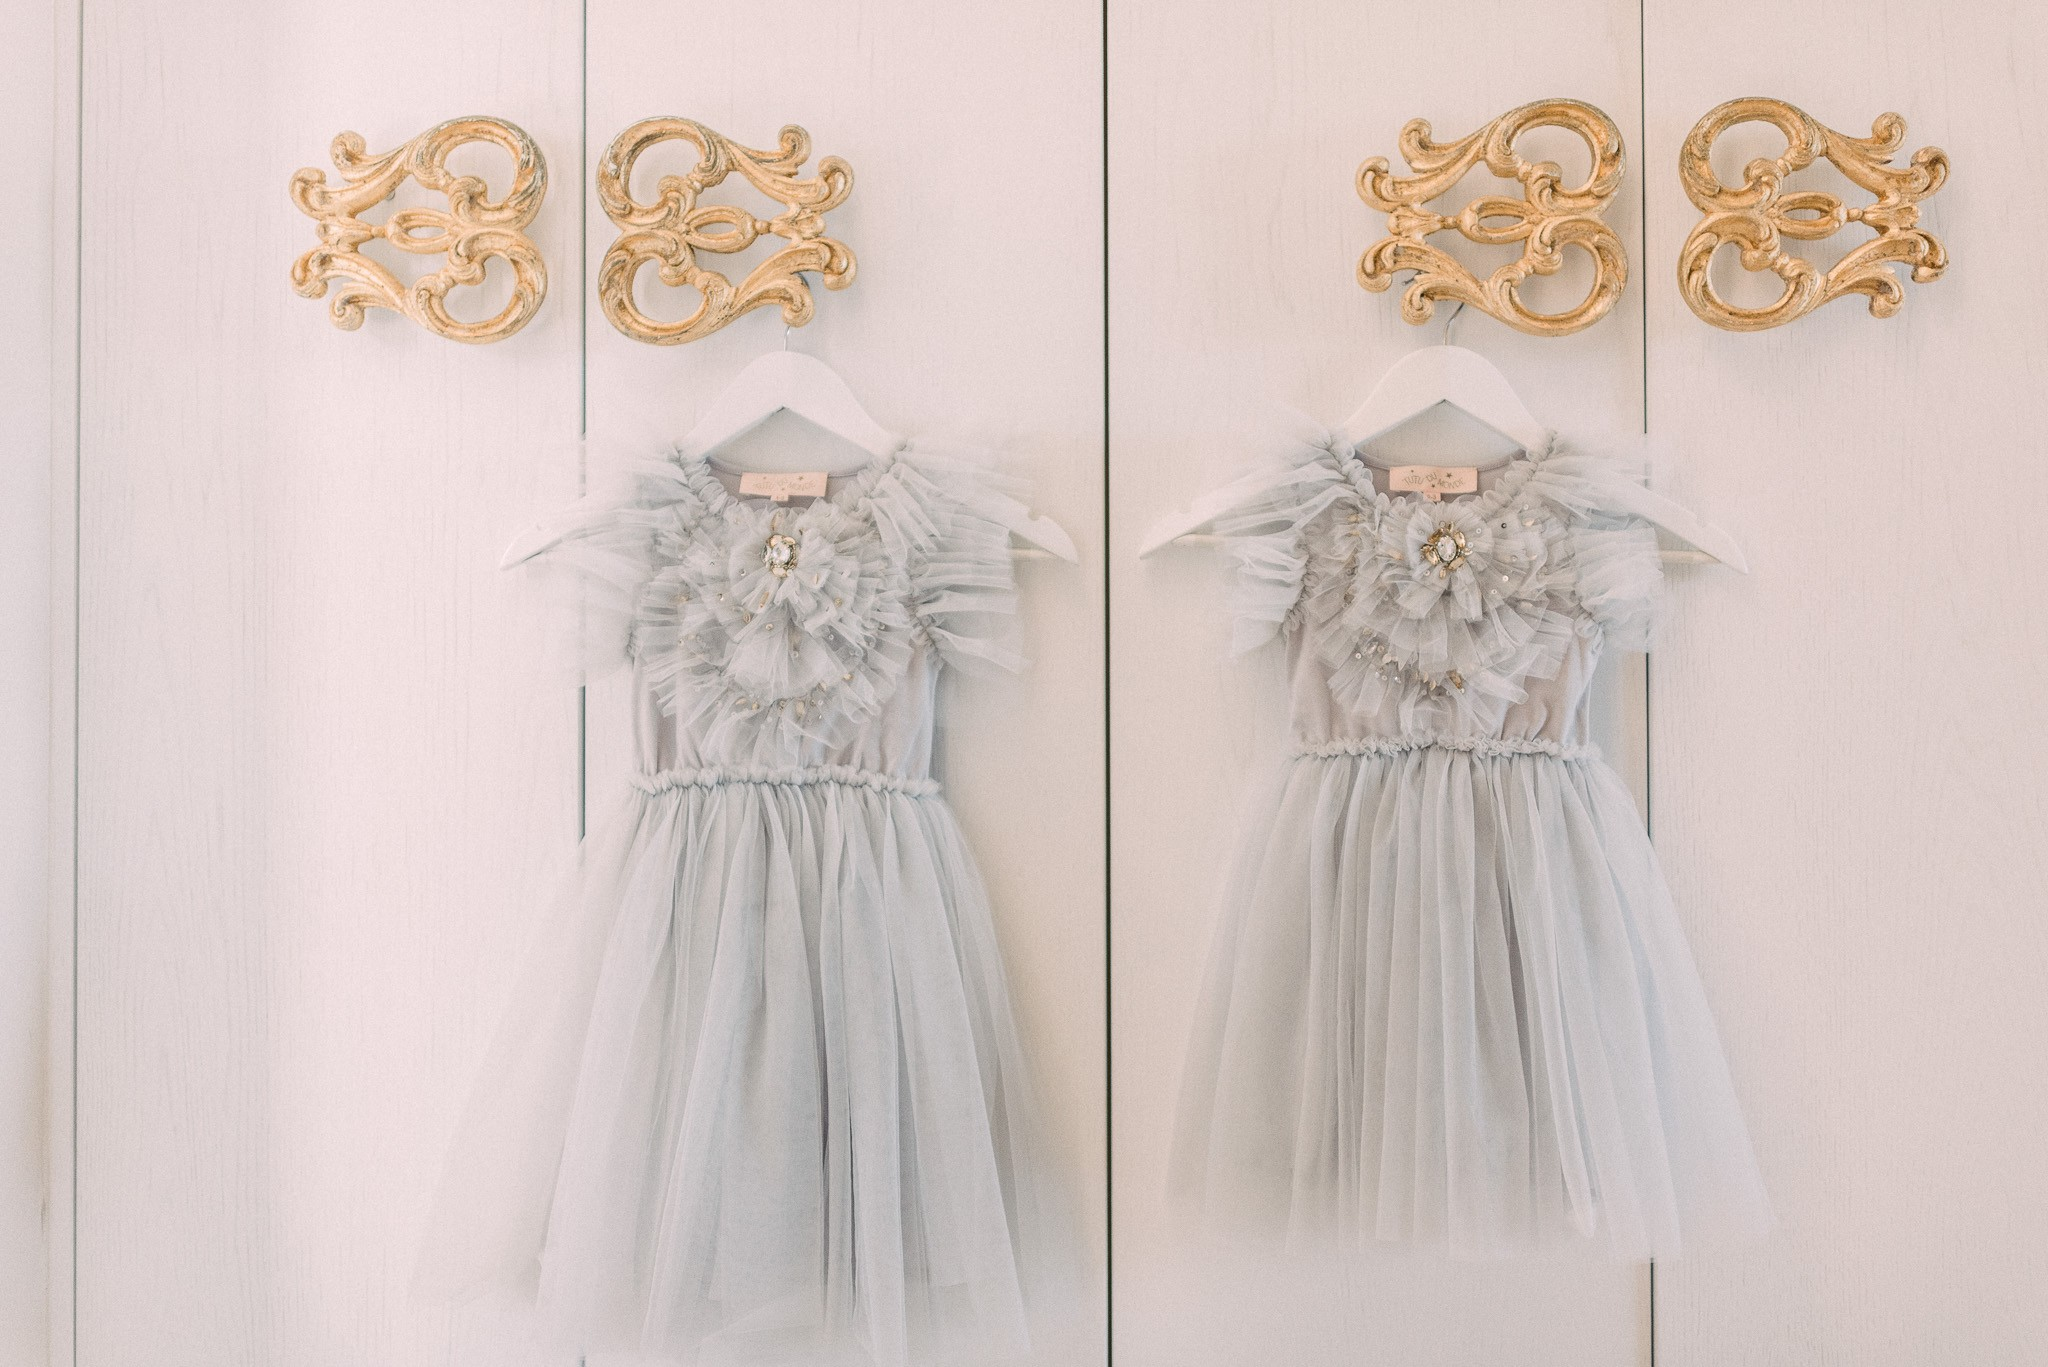 dusty blue flower girl dresses with ruffled tulle and beaded accents